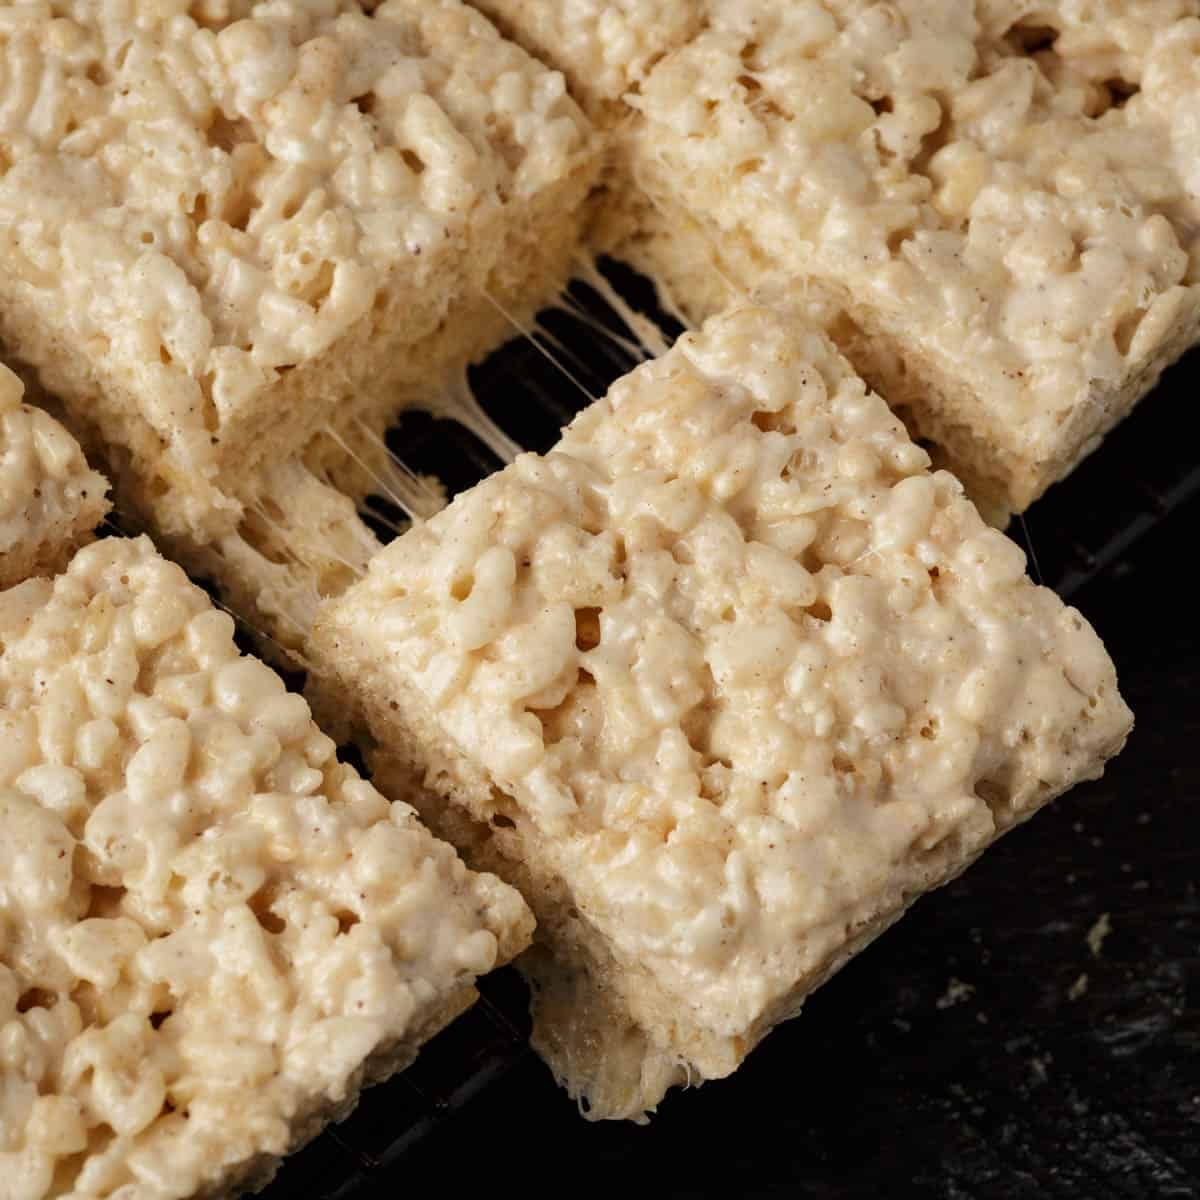 A brown butter Rice Krispie treat being pulled away from the rest.